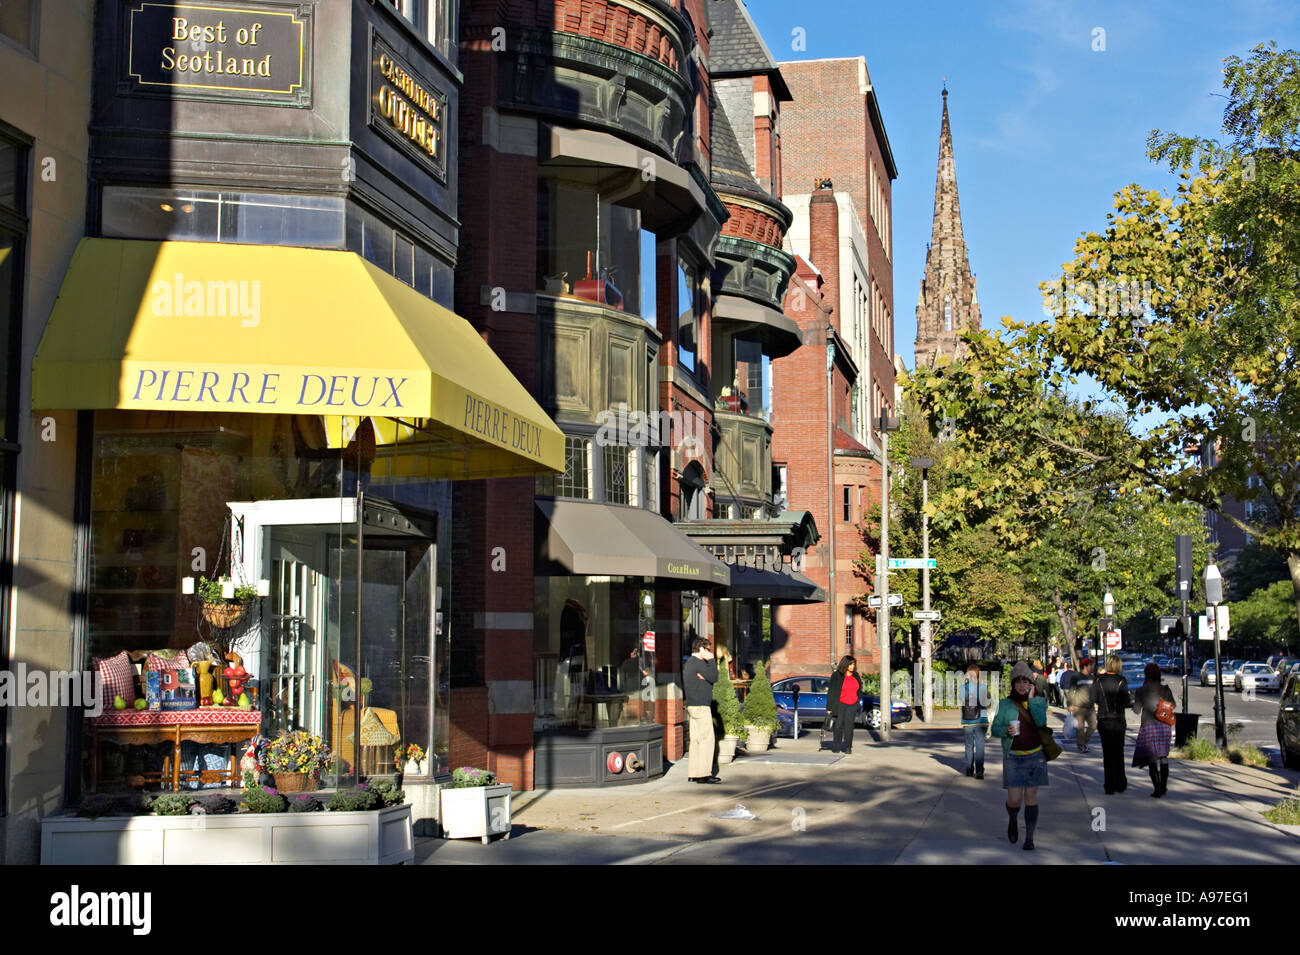 Top 10 Shopping & Malls in Back Bay: See reviews and photos of Shopping & Malls in Back Bay, Boston (Massachusetts) on TripAdvisor.